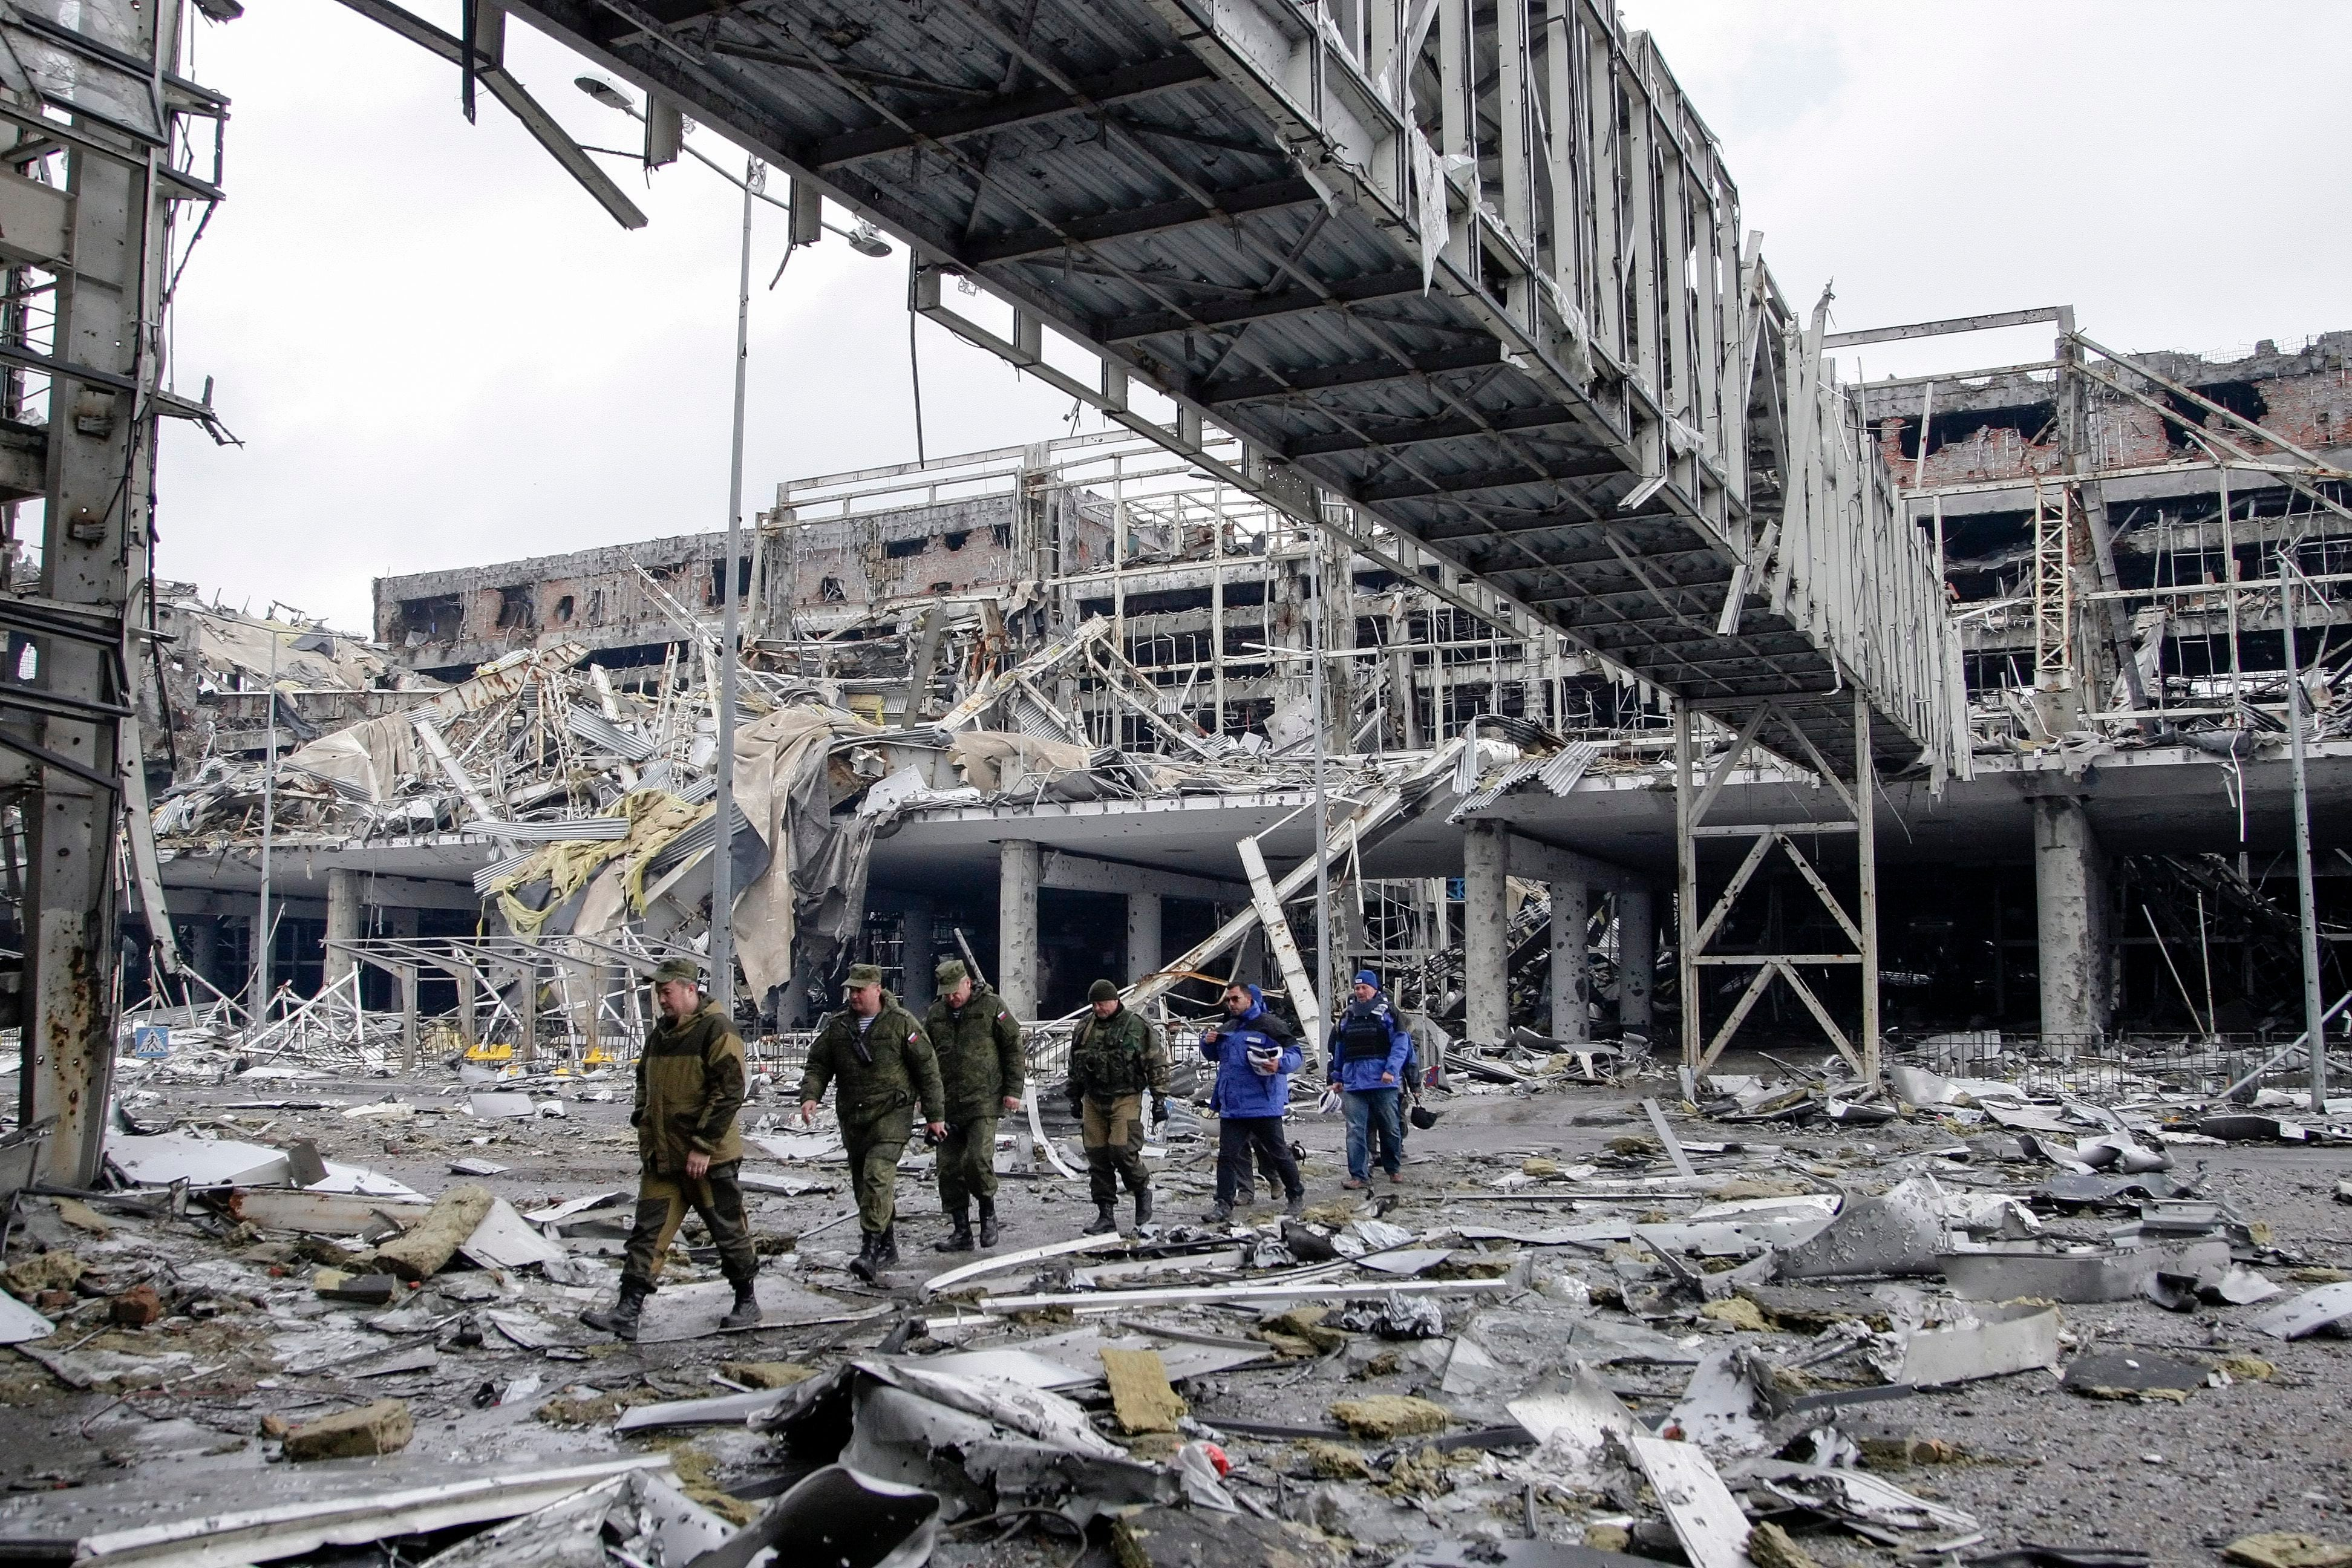 Pro-Russian separatists together with OSCE observers walk at the destroyed Donetsk International Airport, in Donetsk, Ukraine, on April 4. (Photo: Newscom)